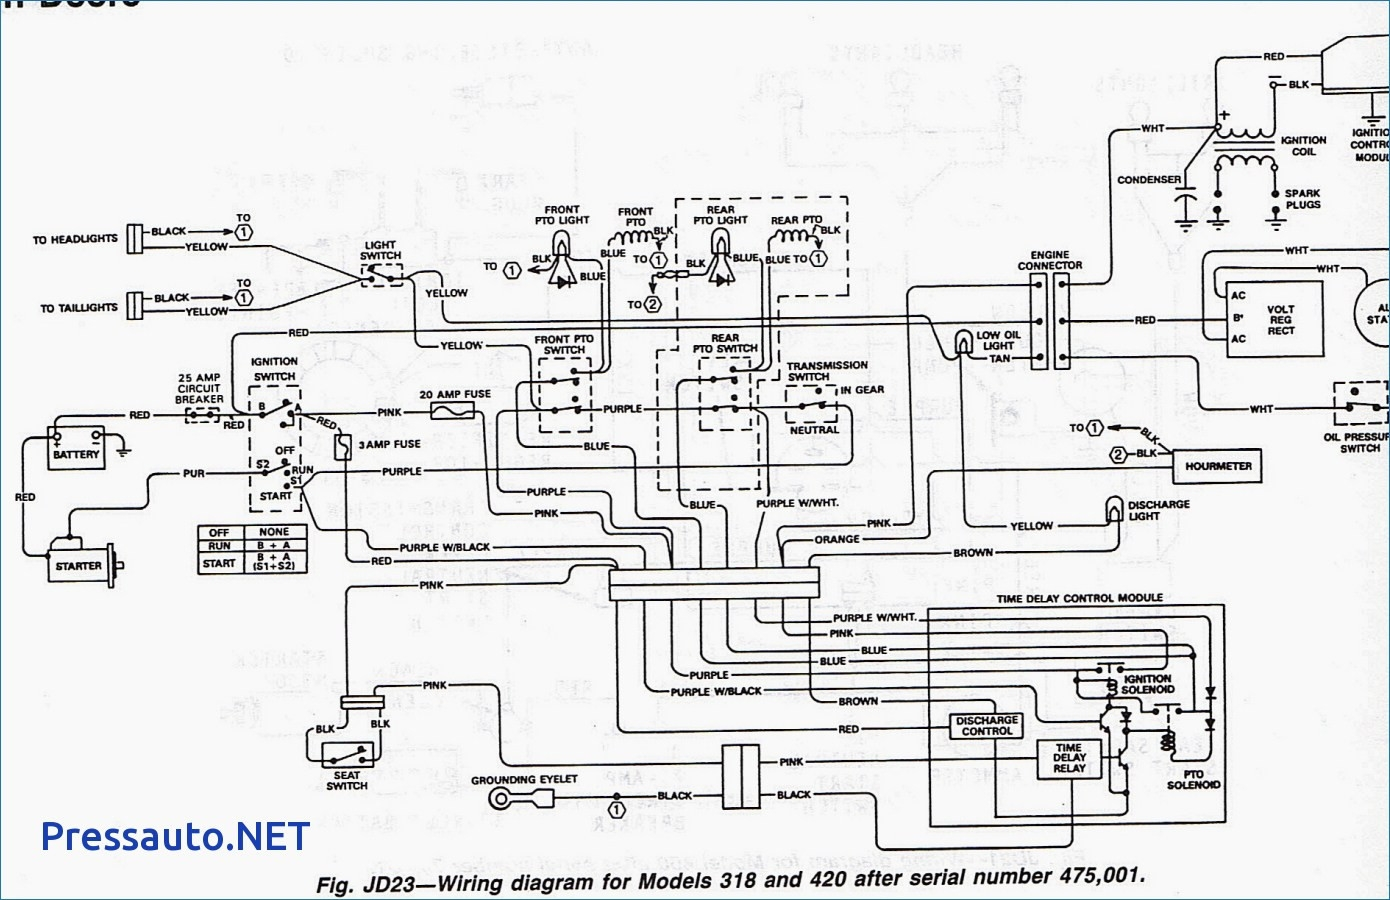 John Deere 400 Wiring Harness | Wiring Diagram on